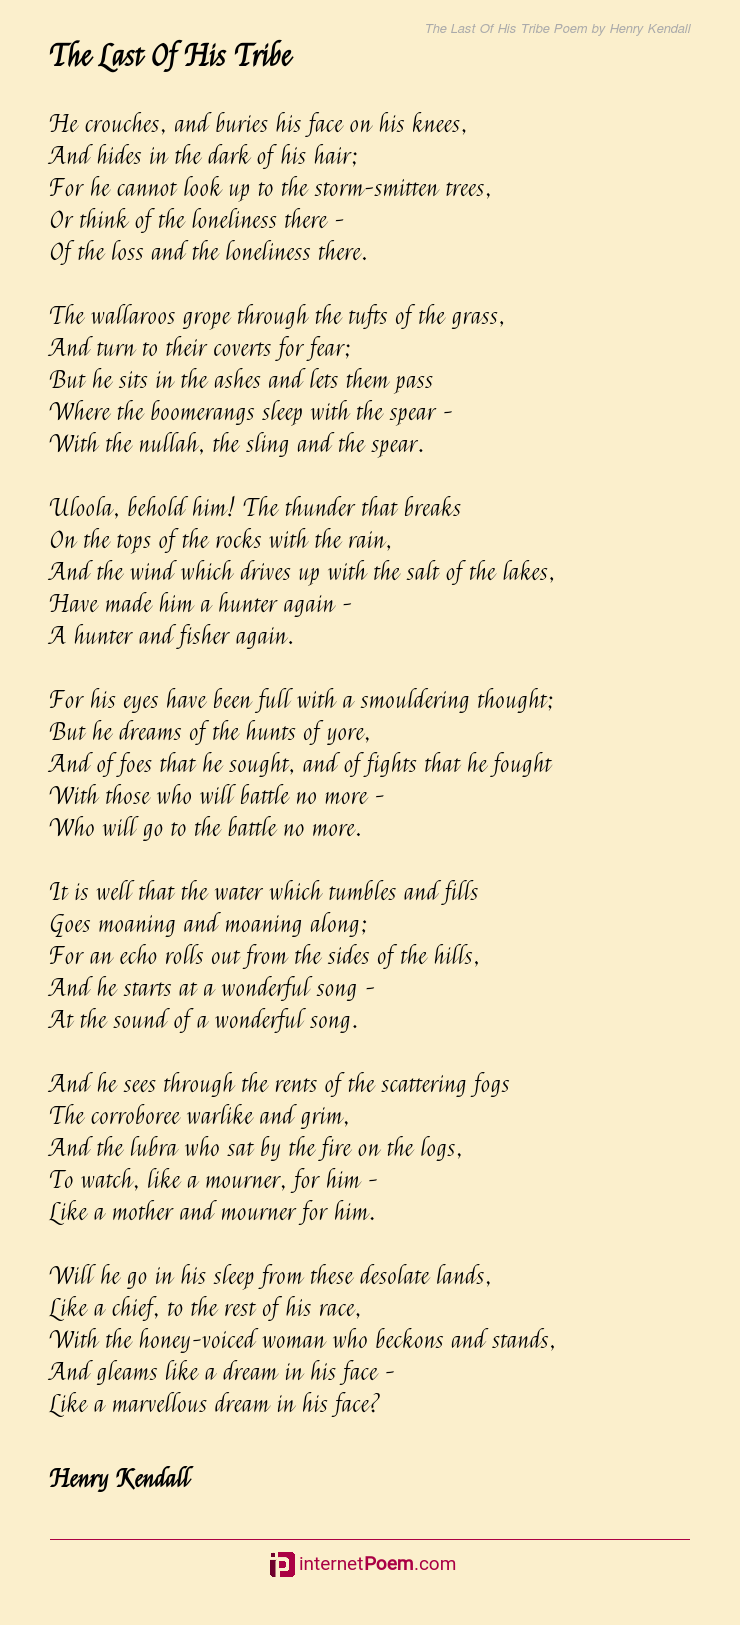 The Last Of His Tribe Poem By Henry Kendall